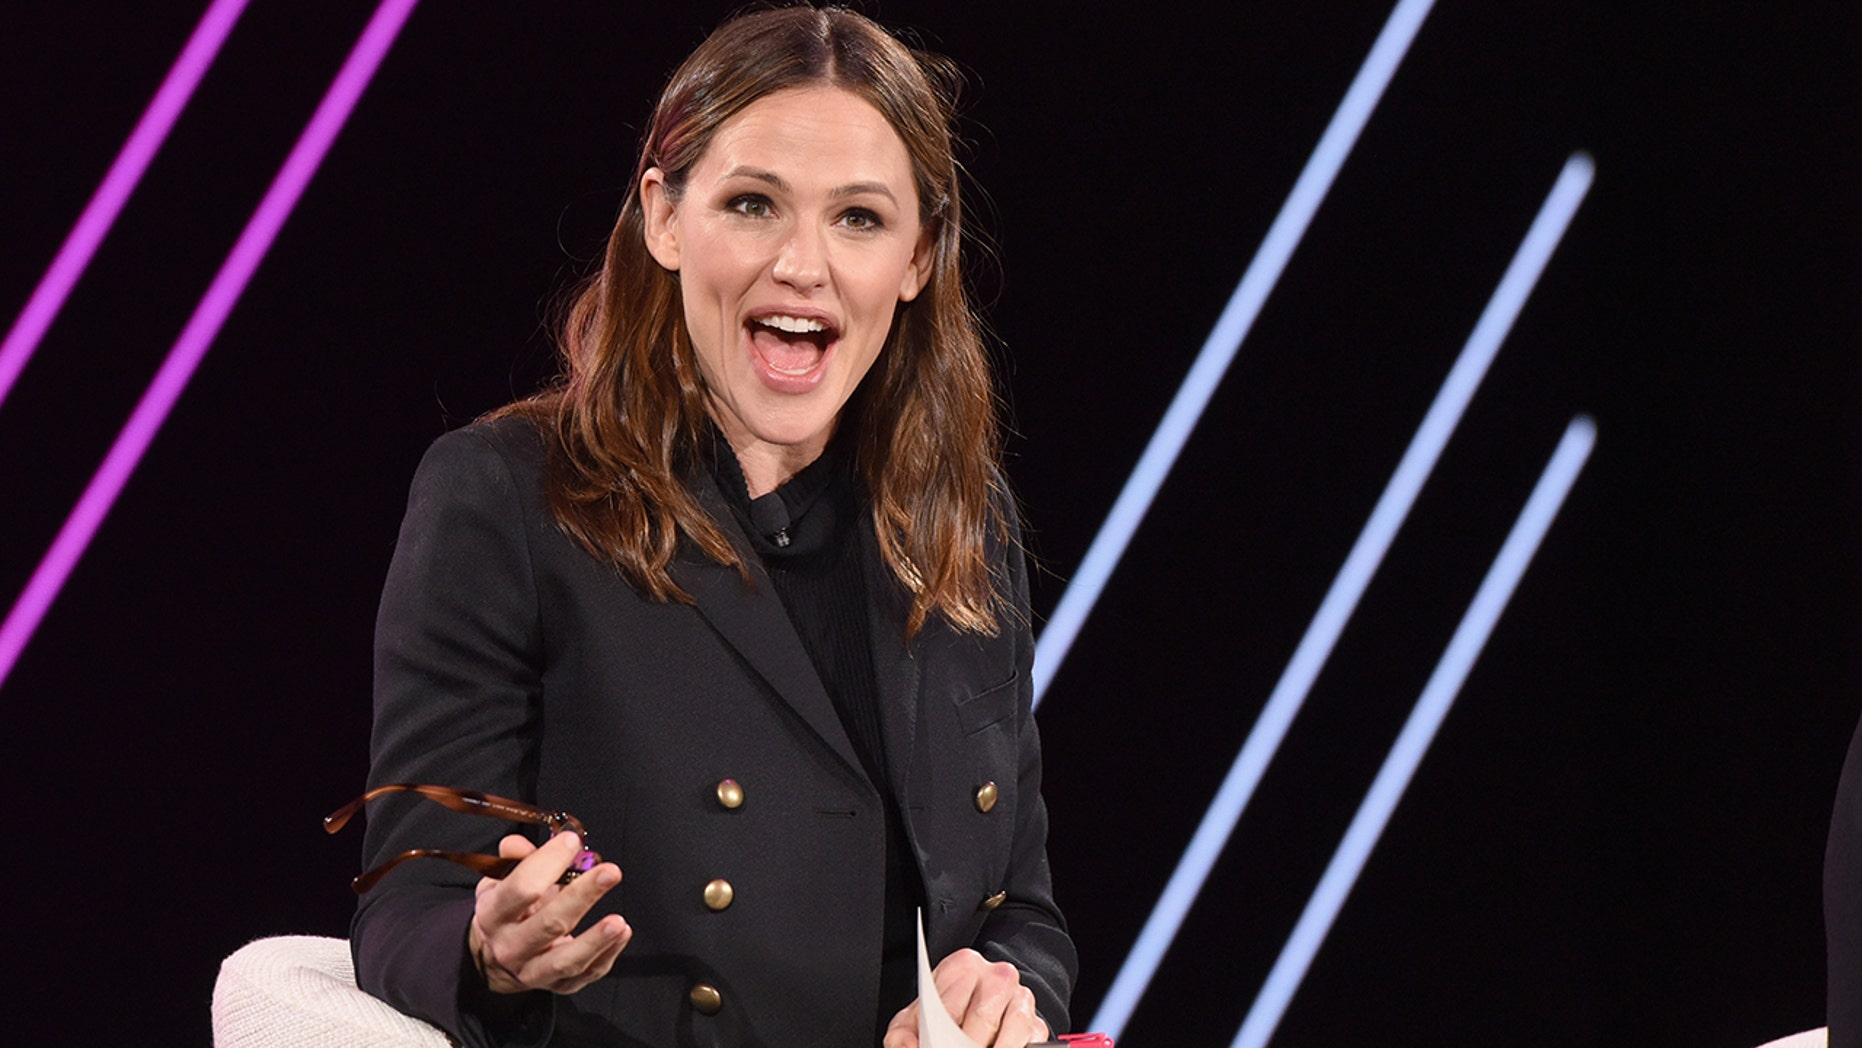 Jennifer Garner praised female-led shoots in a male-dominated show business.